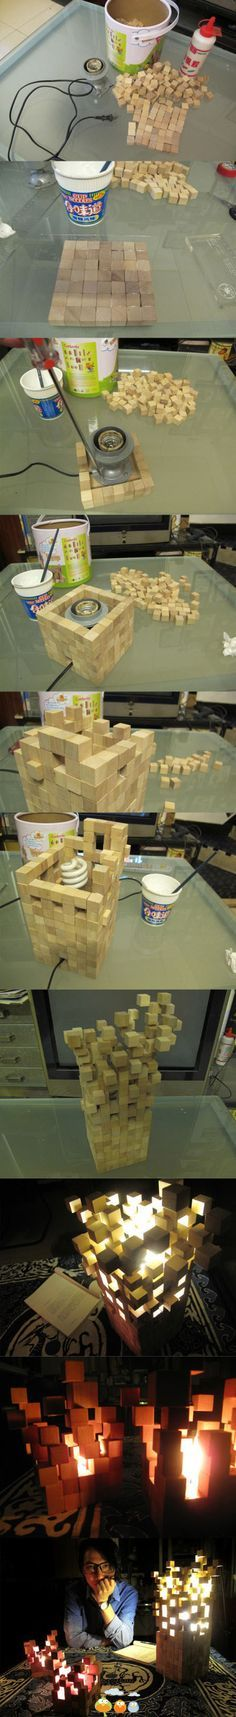 Wooden Blocks Lamp. (I am sure we can figure out a way to put a minecraft style spin on this project).